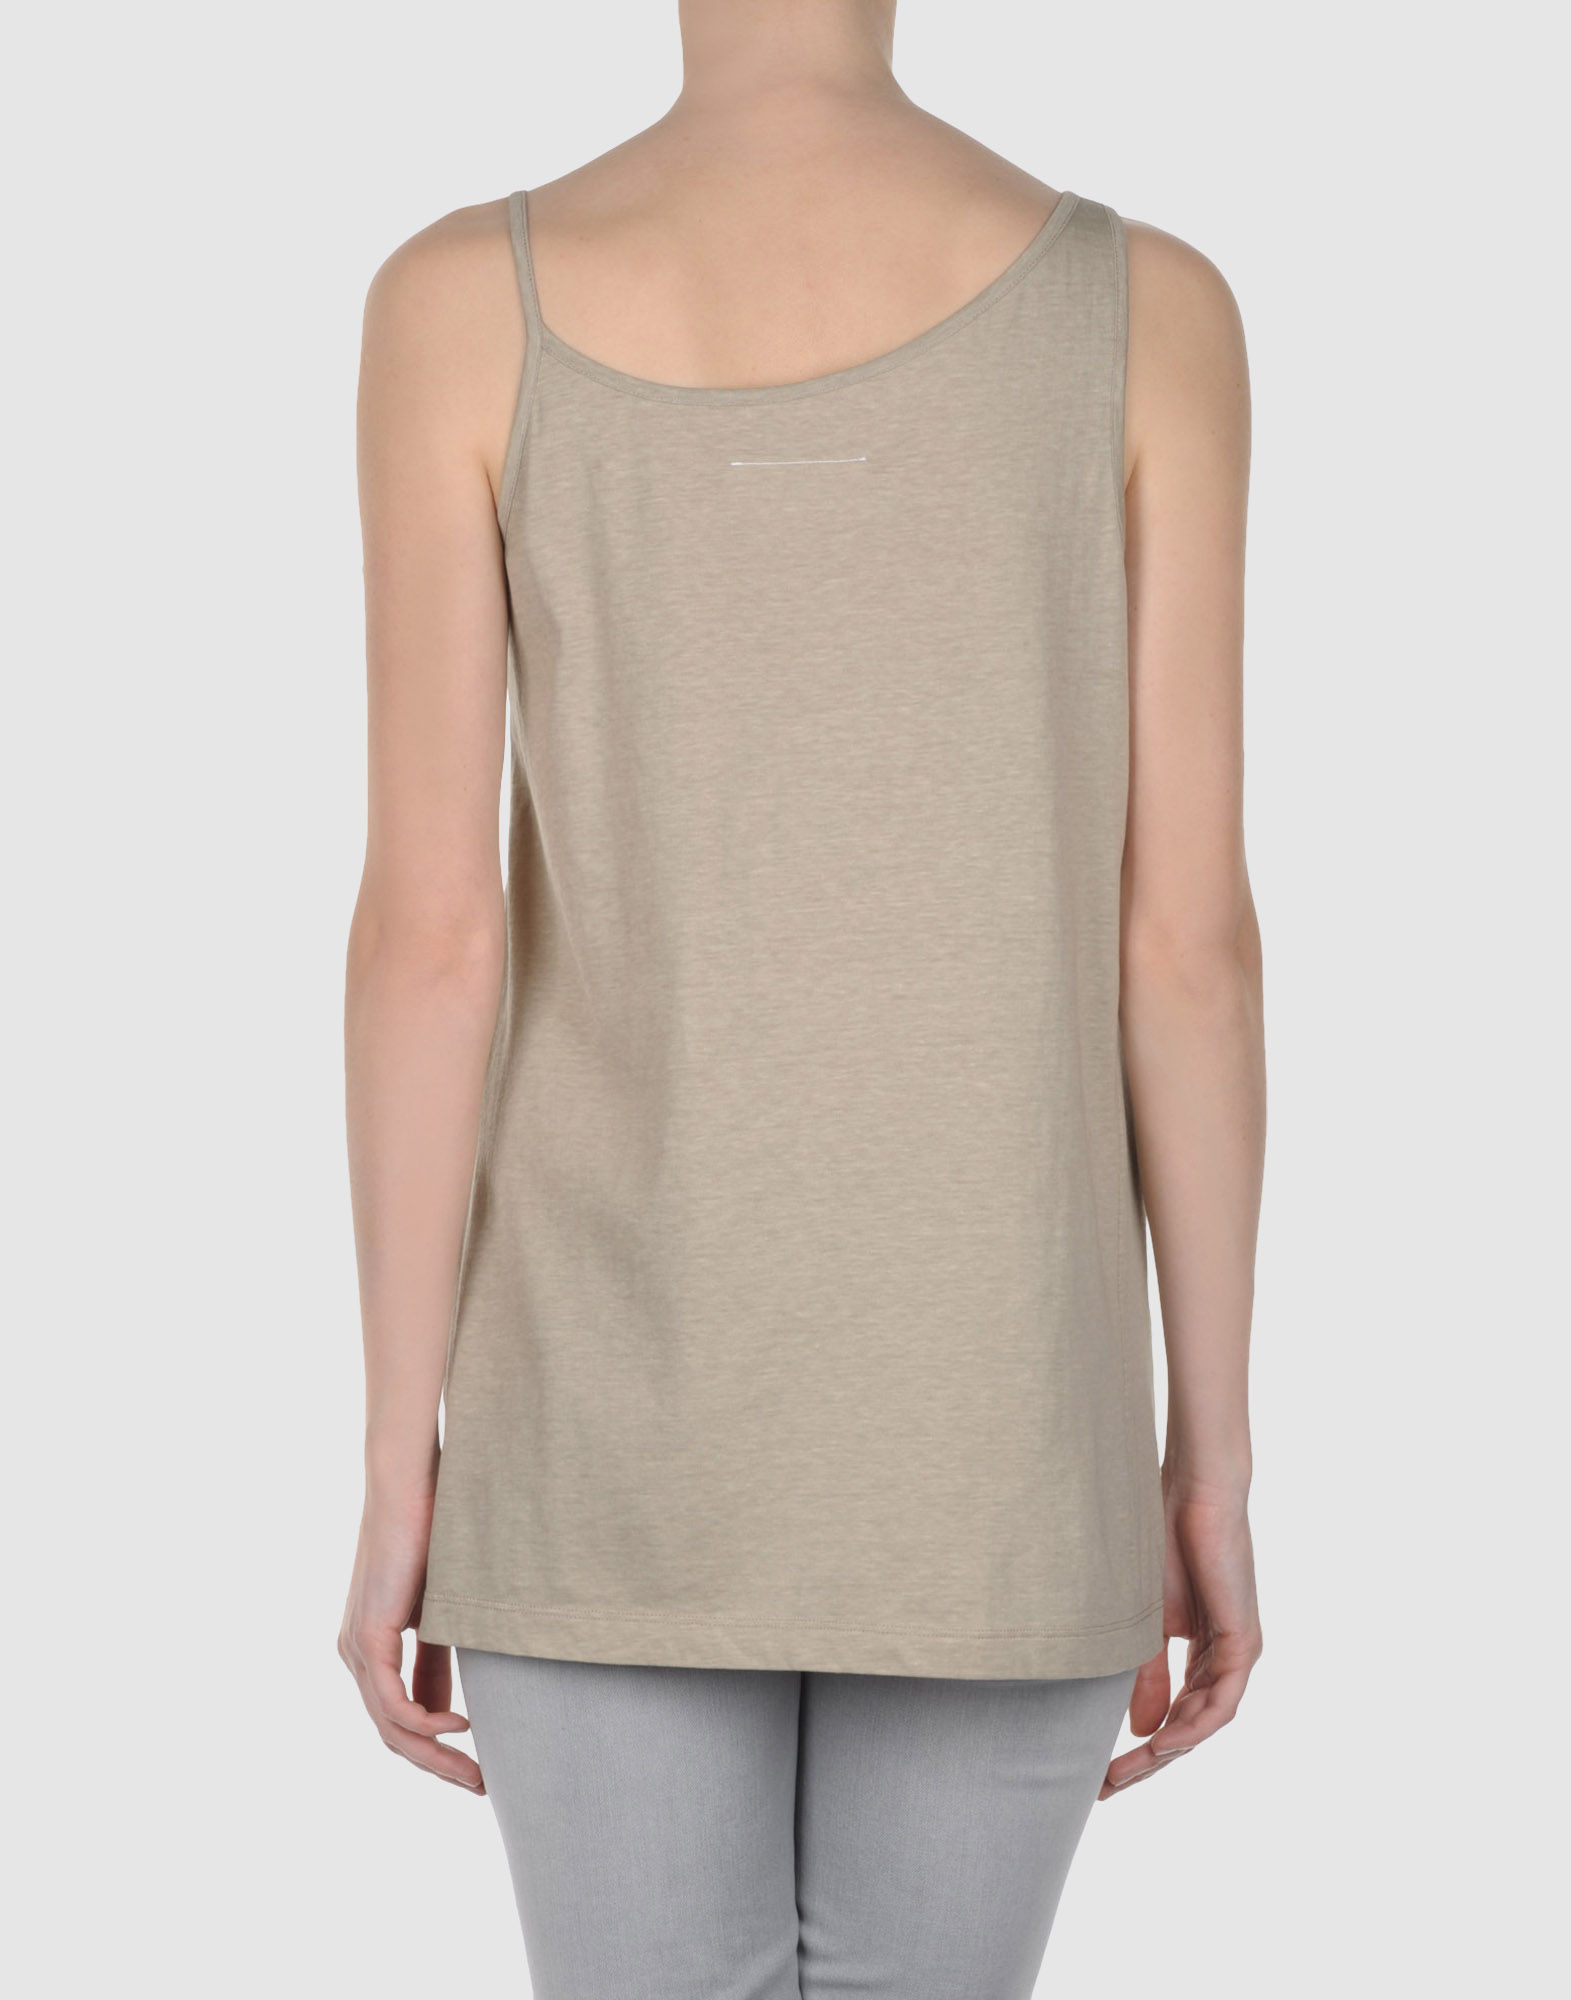 Lyst mm6 by maison martin margiela top in natural for Mm6 maison martin margiela